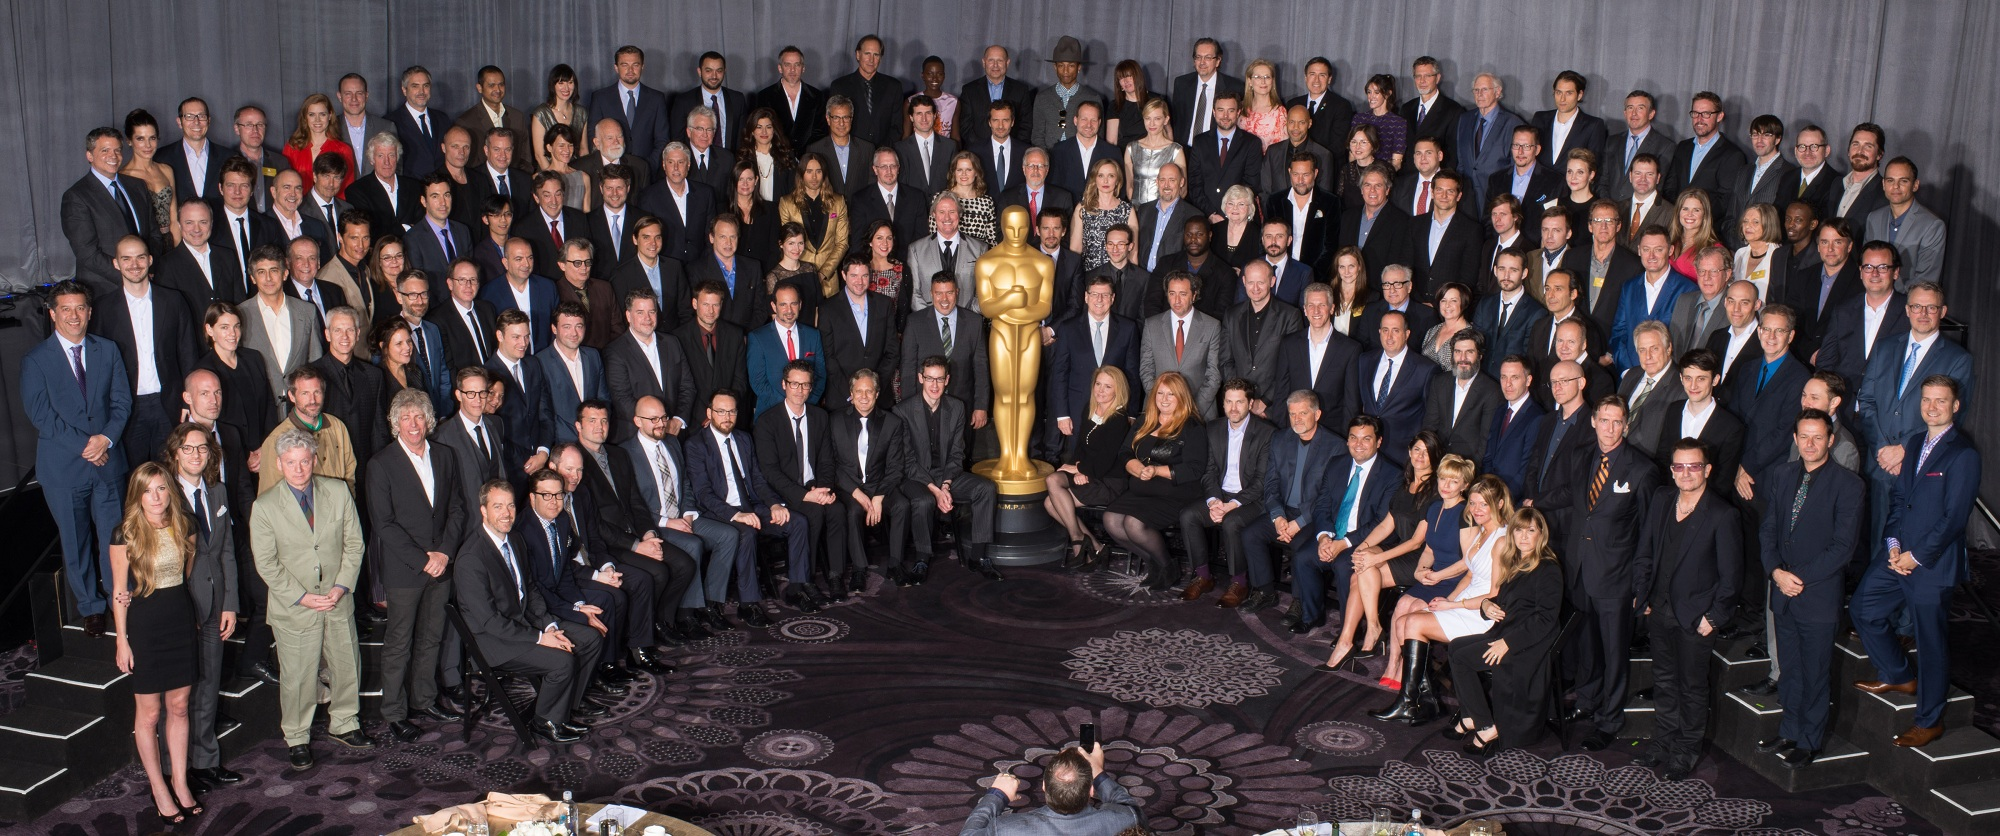 86th Oscars®, Nominees Luncheon, Group Photo